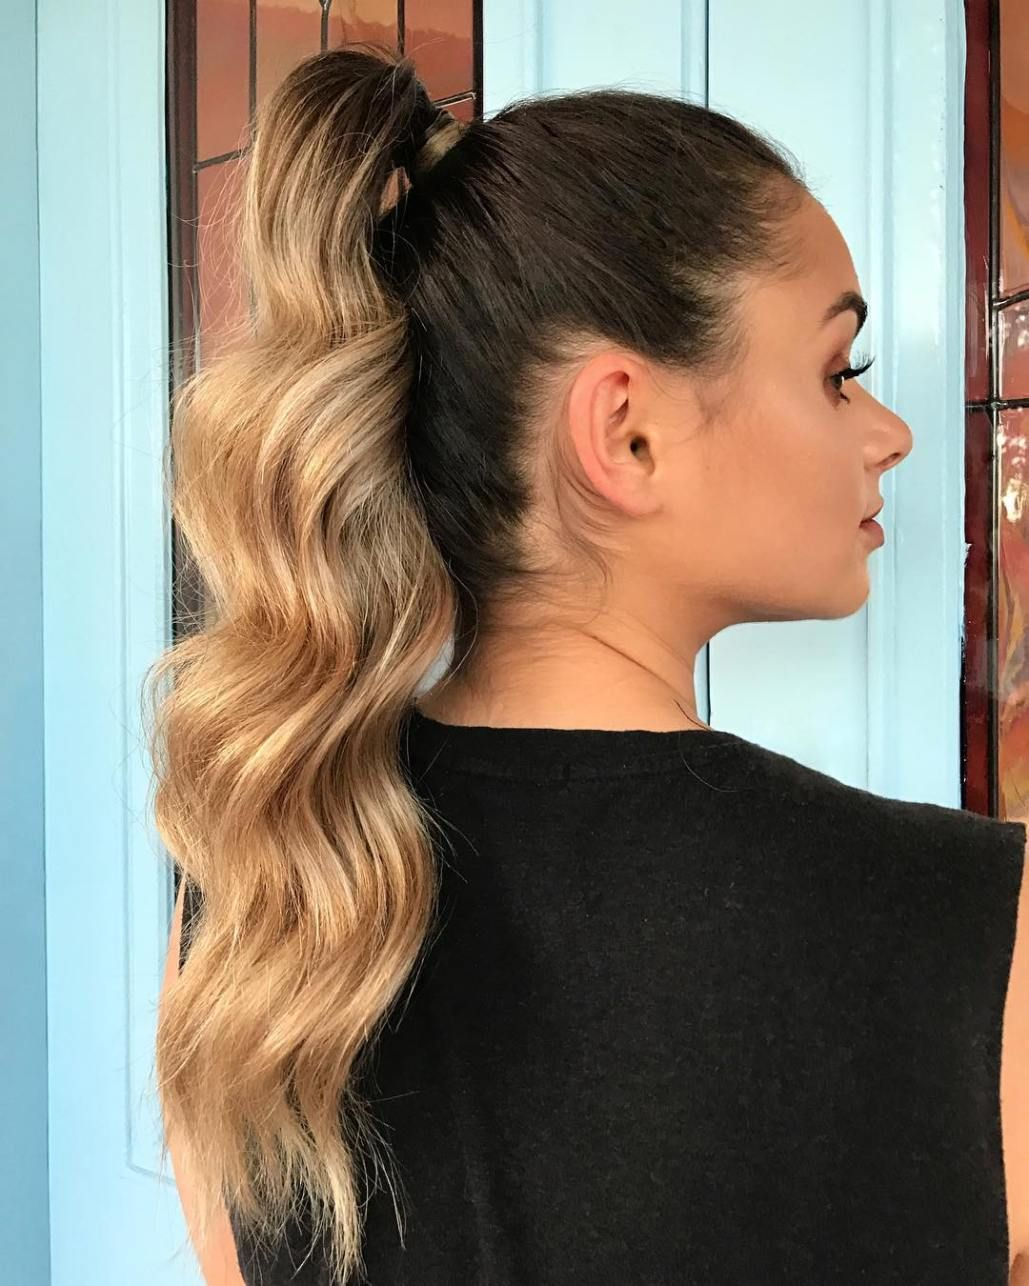 40 high ponytail ideas for every woman | ponytails in 2019